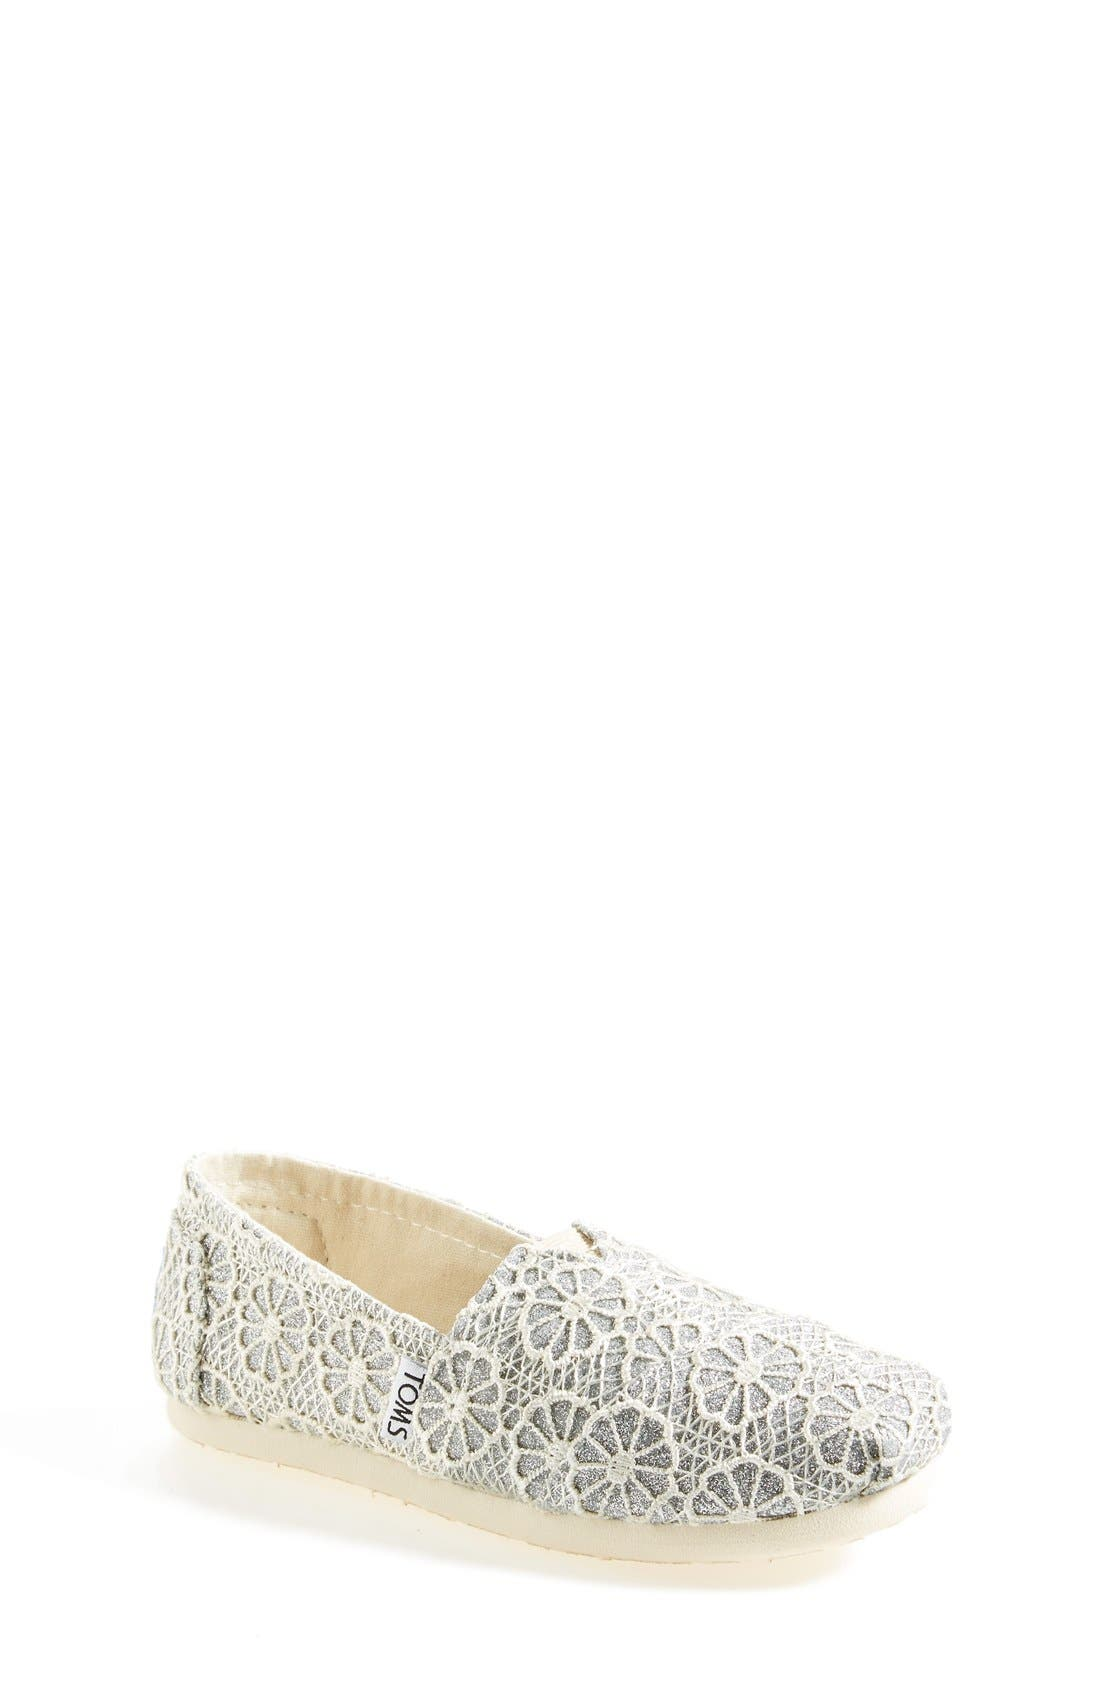 Main Image - TOMS 'Youth - Glitter' Crochet Slip-On (Toddler, Little Kid & Big Kid)